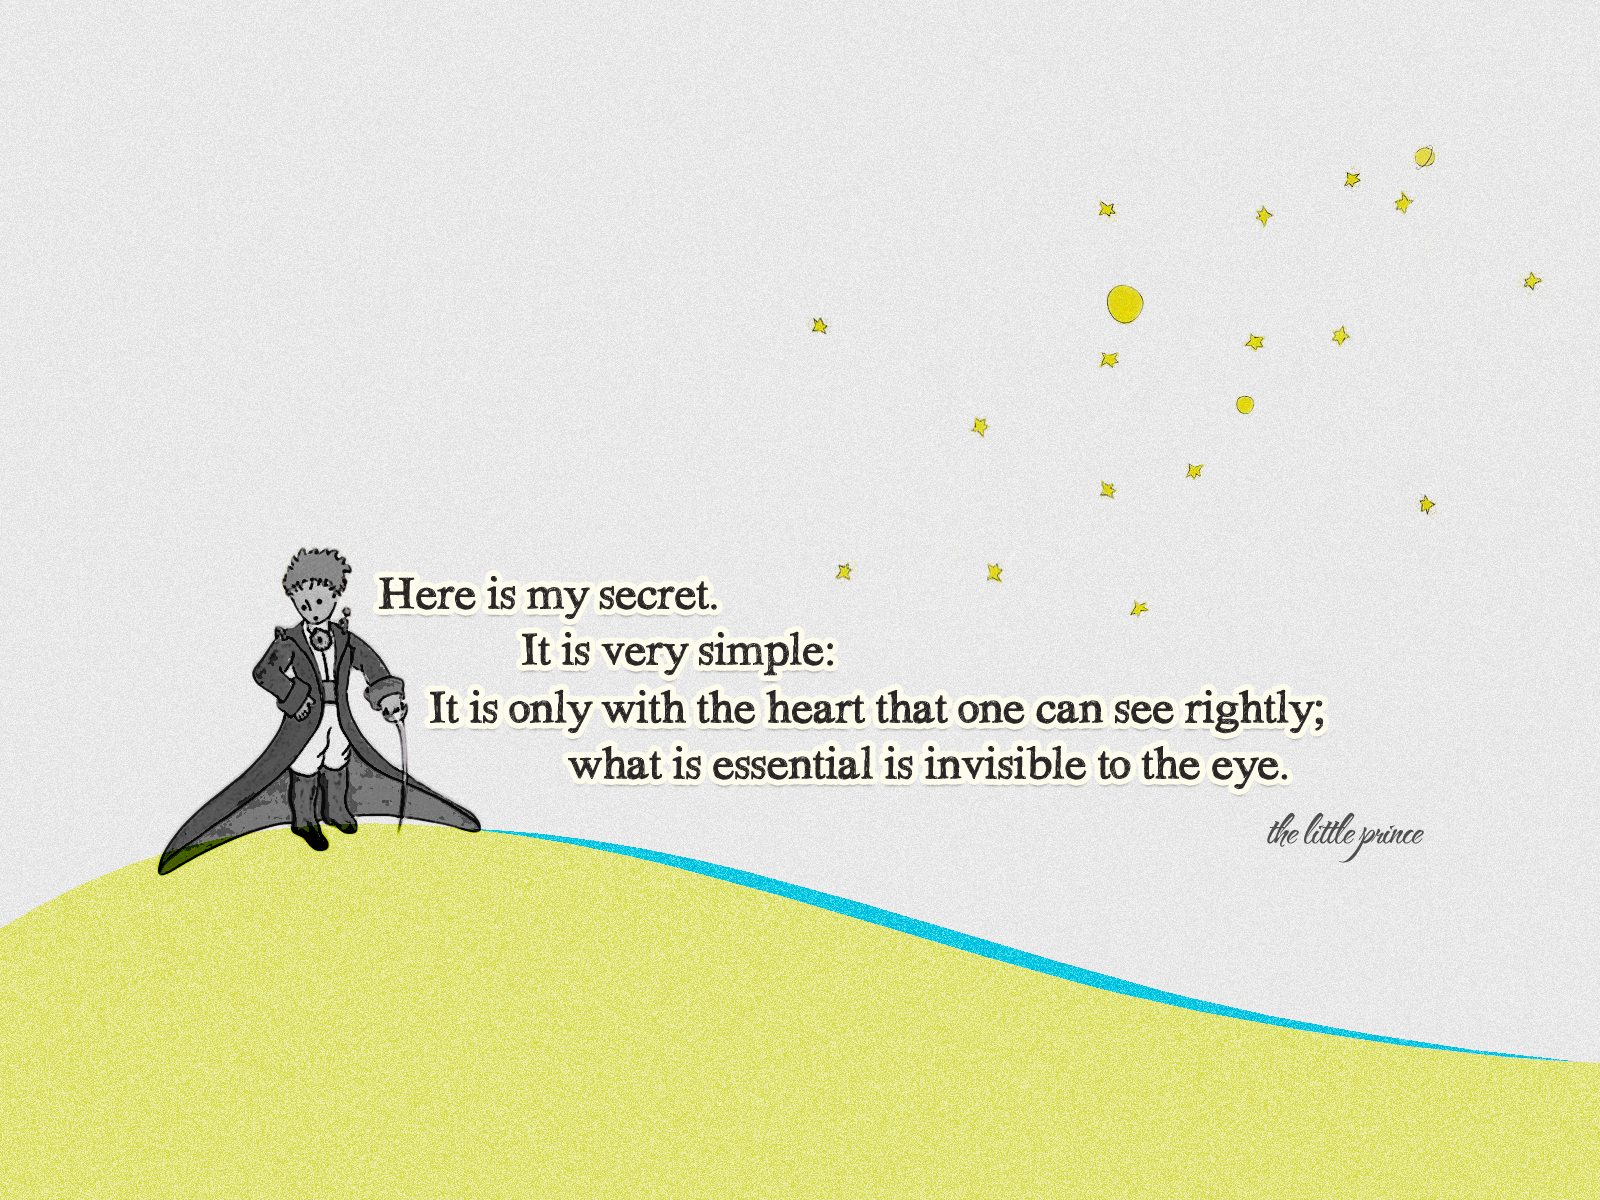 Drawn quote little prince Little The  Prince